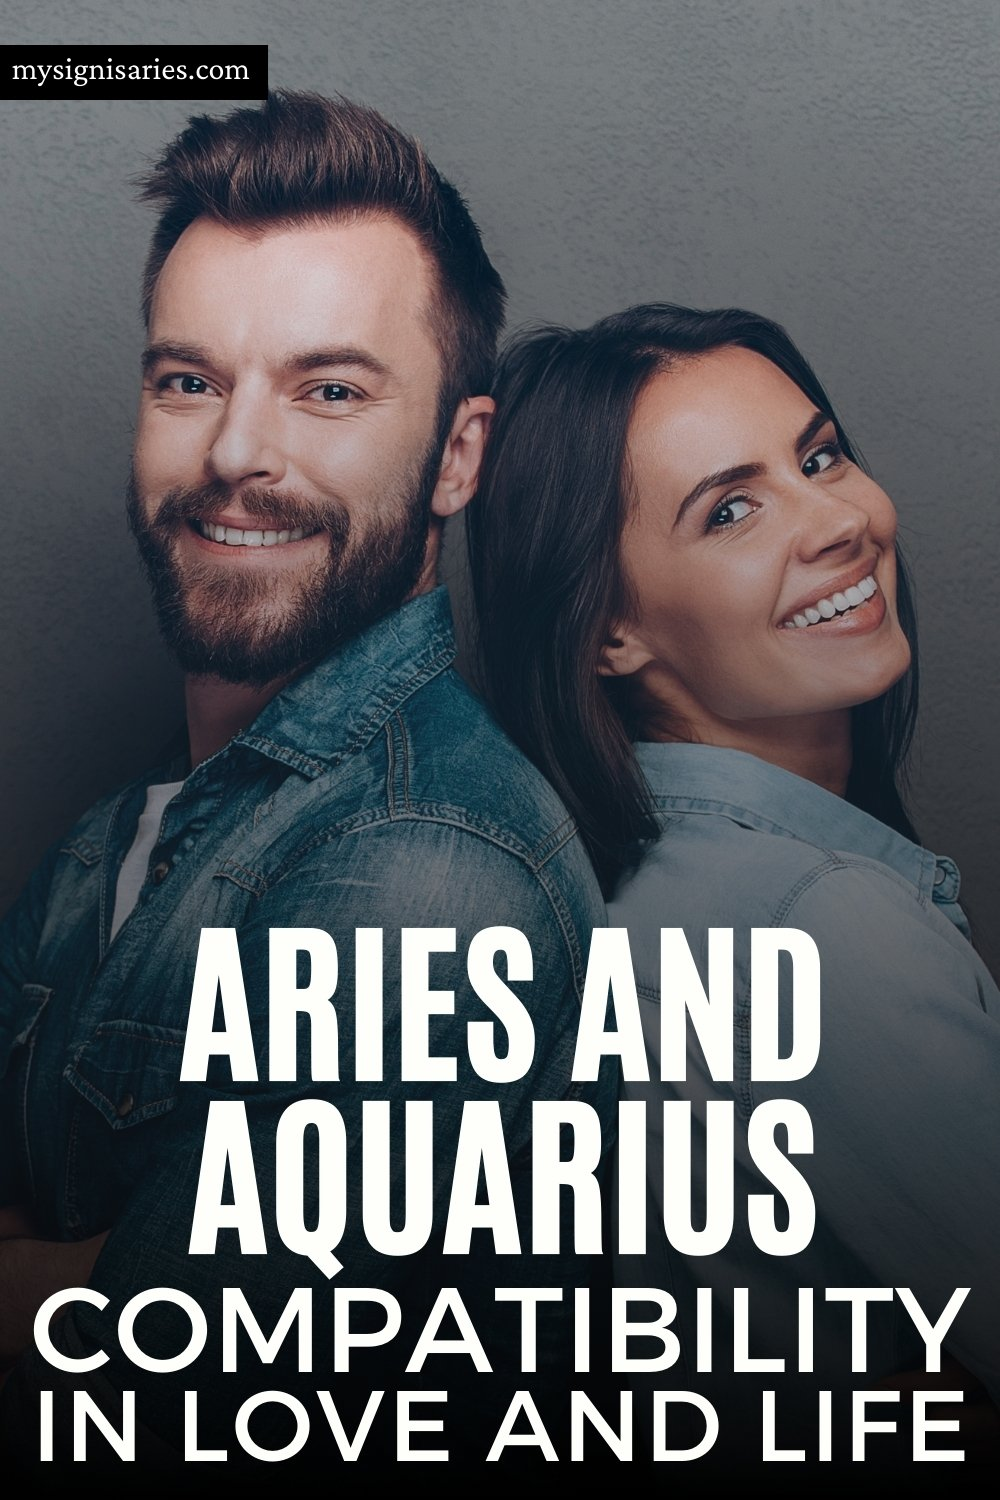 Aries And Aquarius Compatibility In Love And Life #aries #aquarius #astrology #zodiac #compatibility